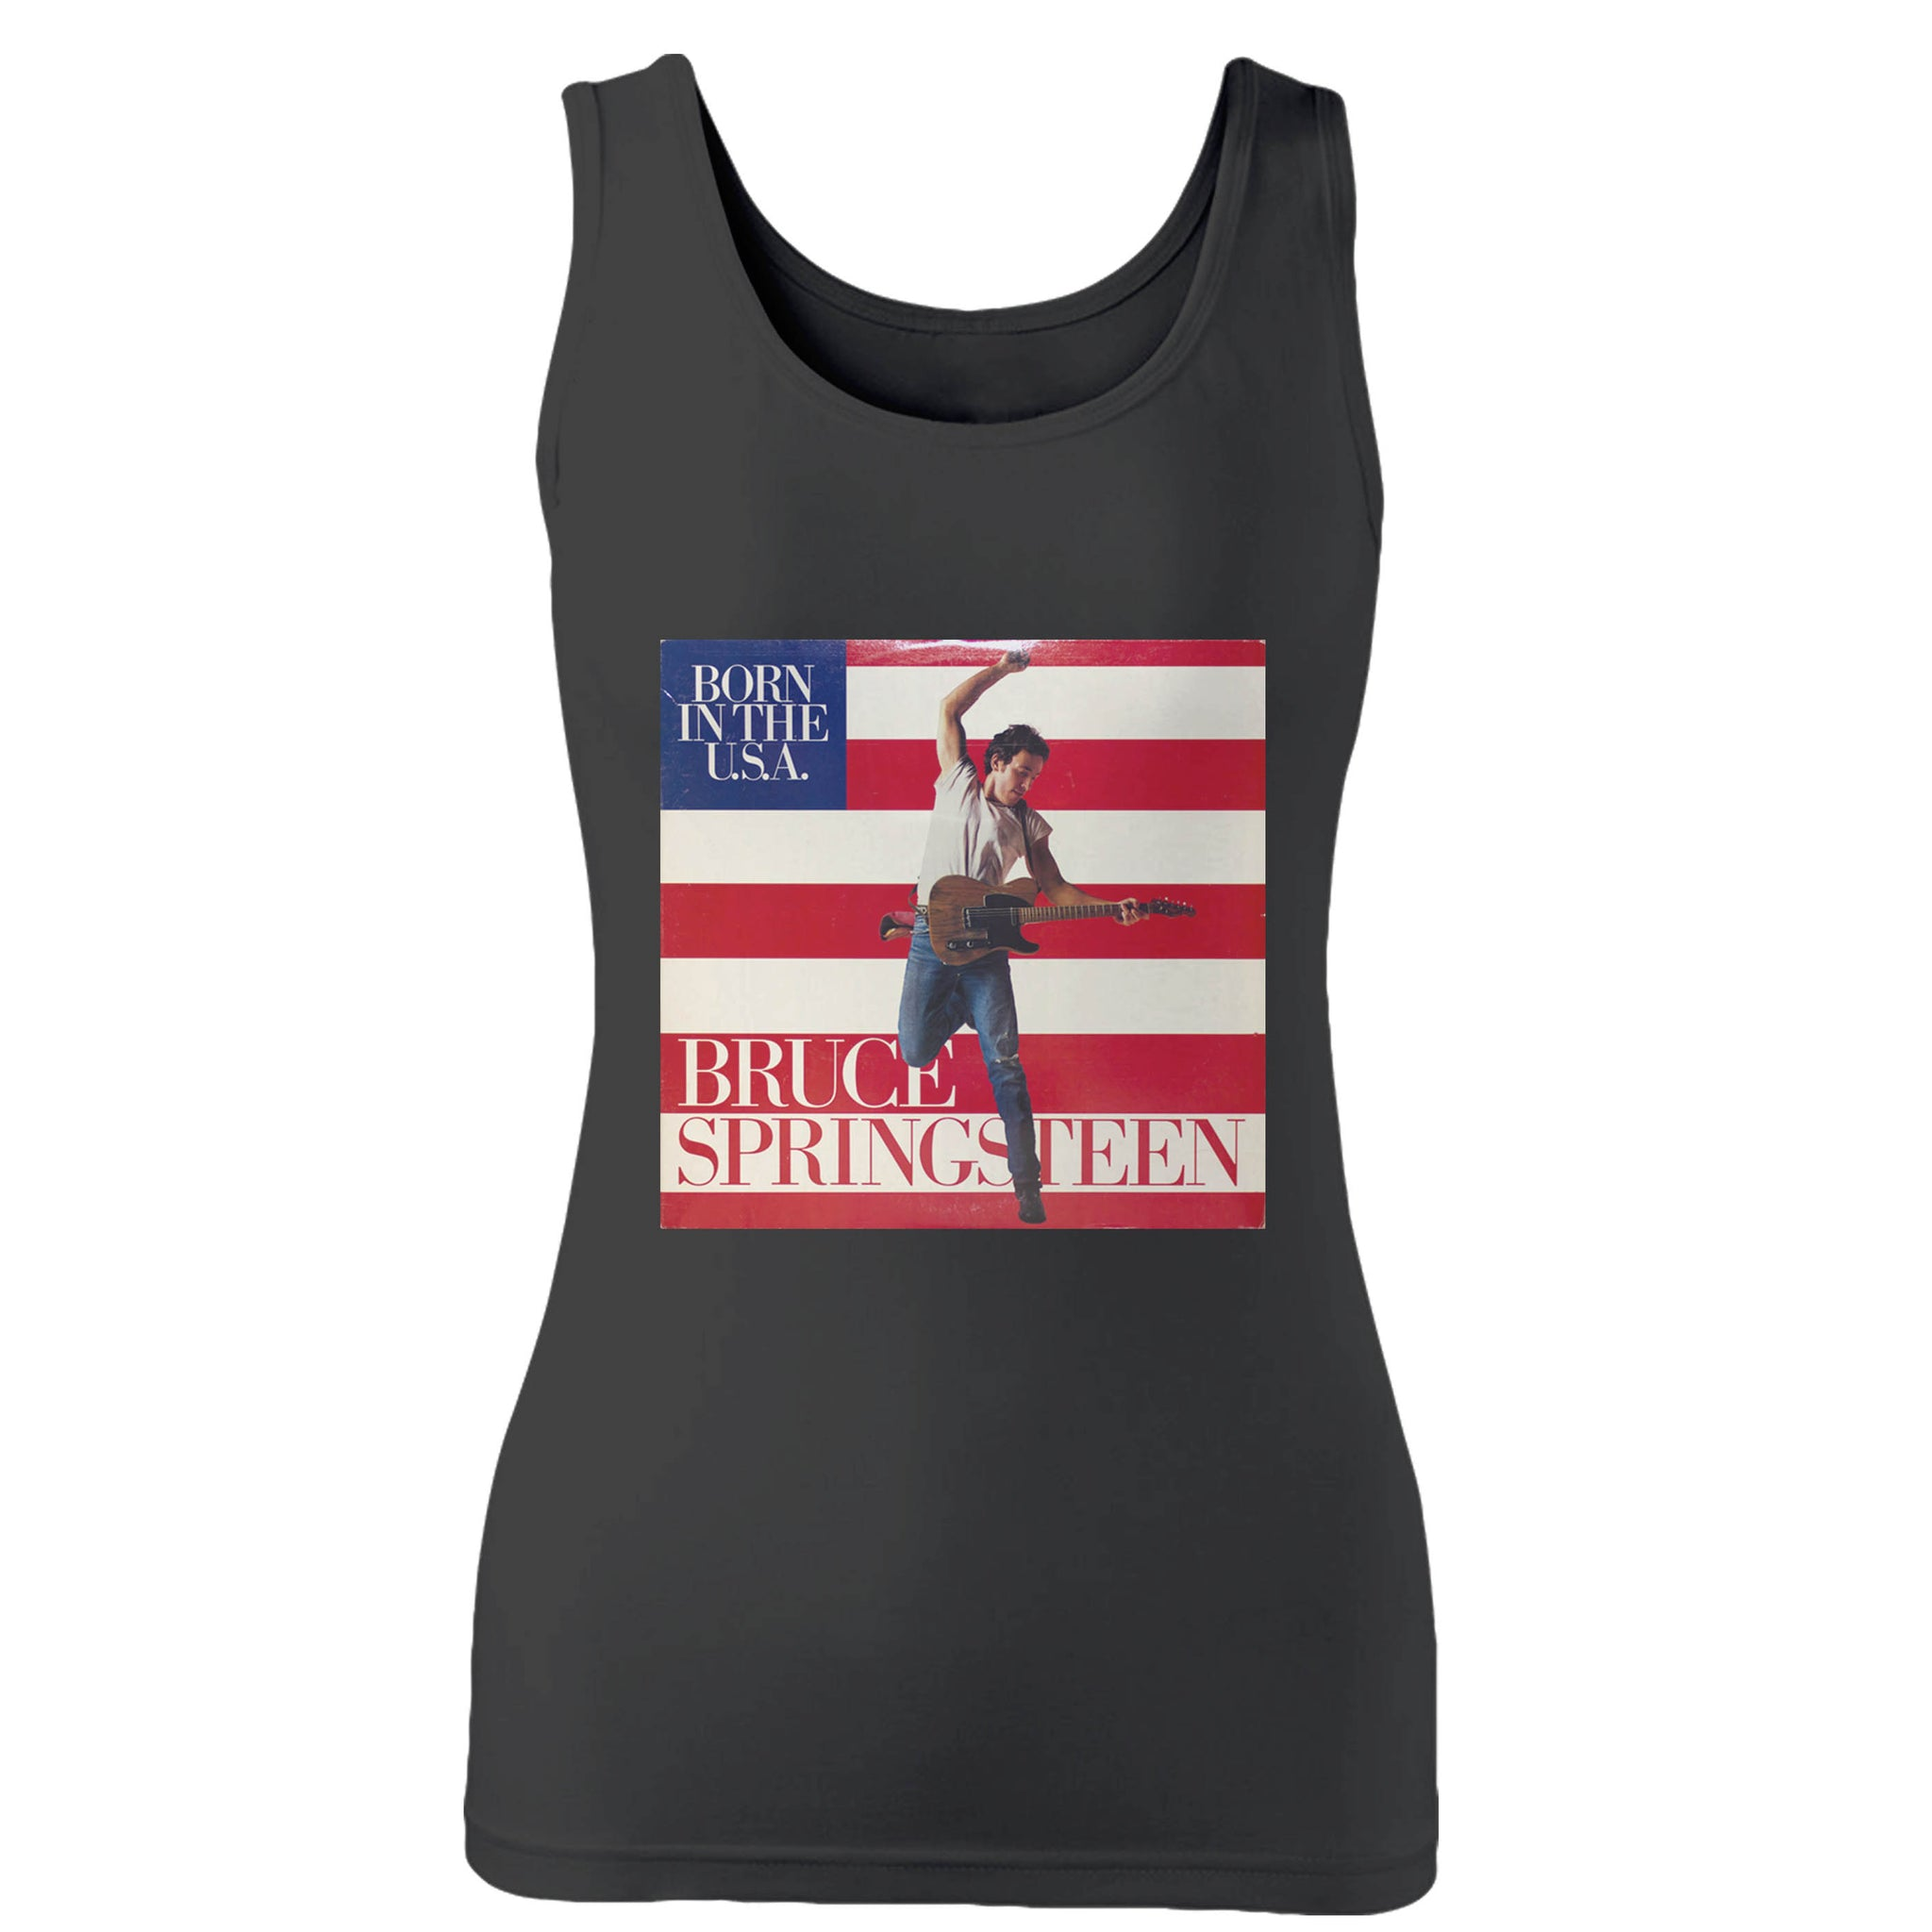 Bruce Springsteen The Boss Woman's Tank Top